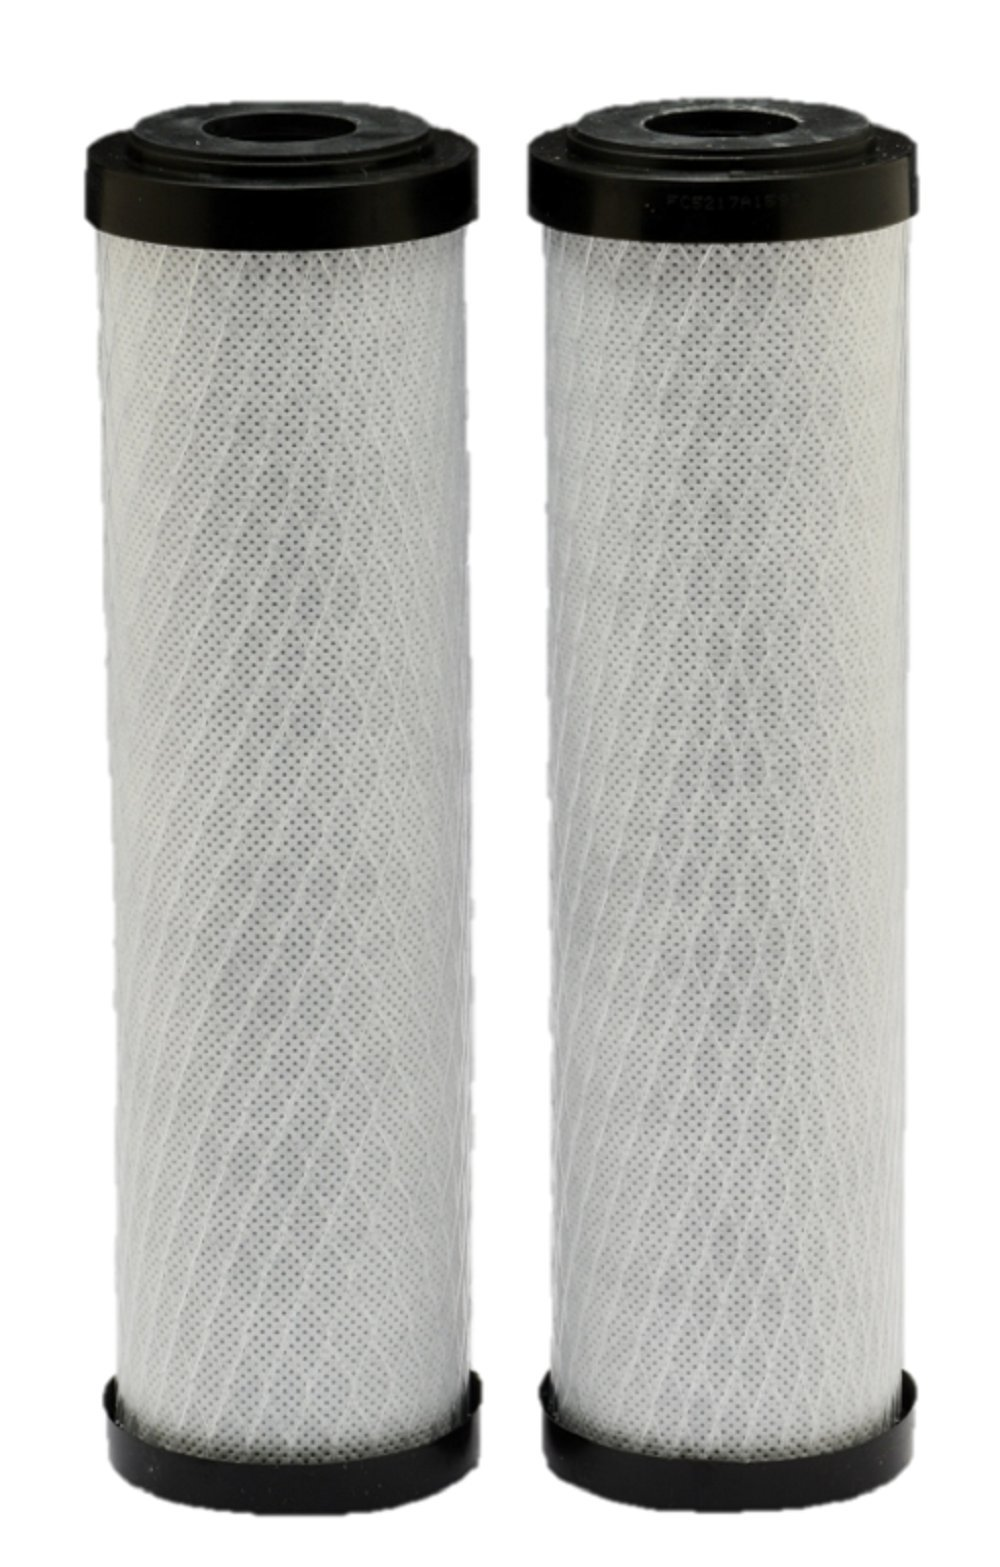 Whirlpool WHA2BF5 Standard Capacity Carbon Block Whole Home Water Filter - 2 Pack